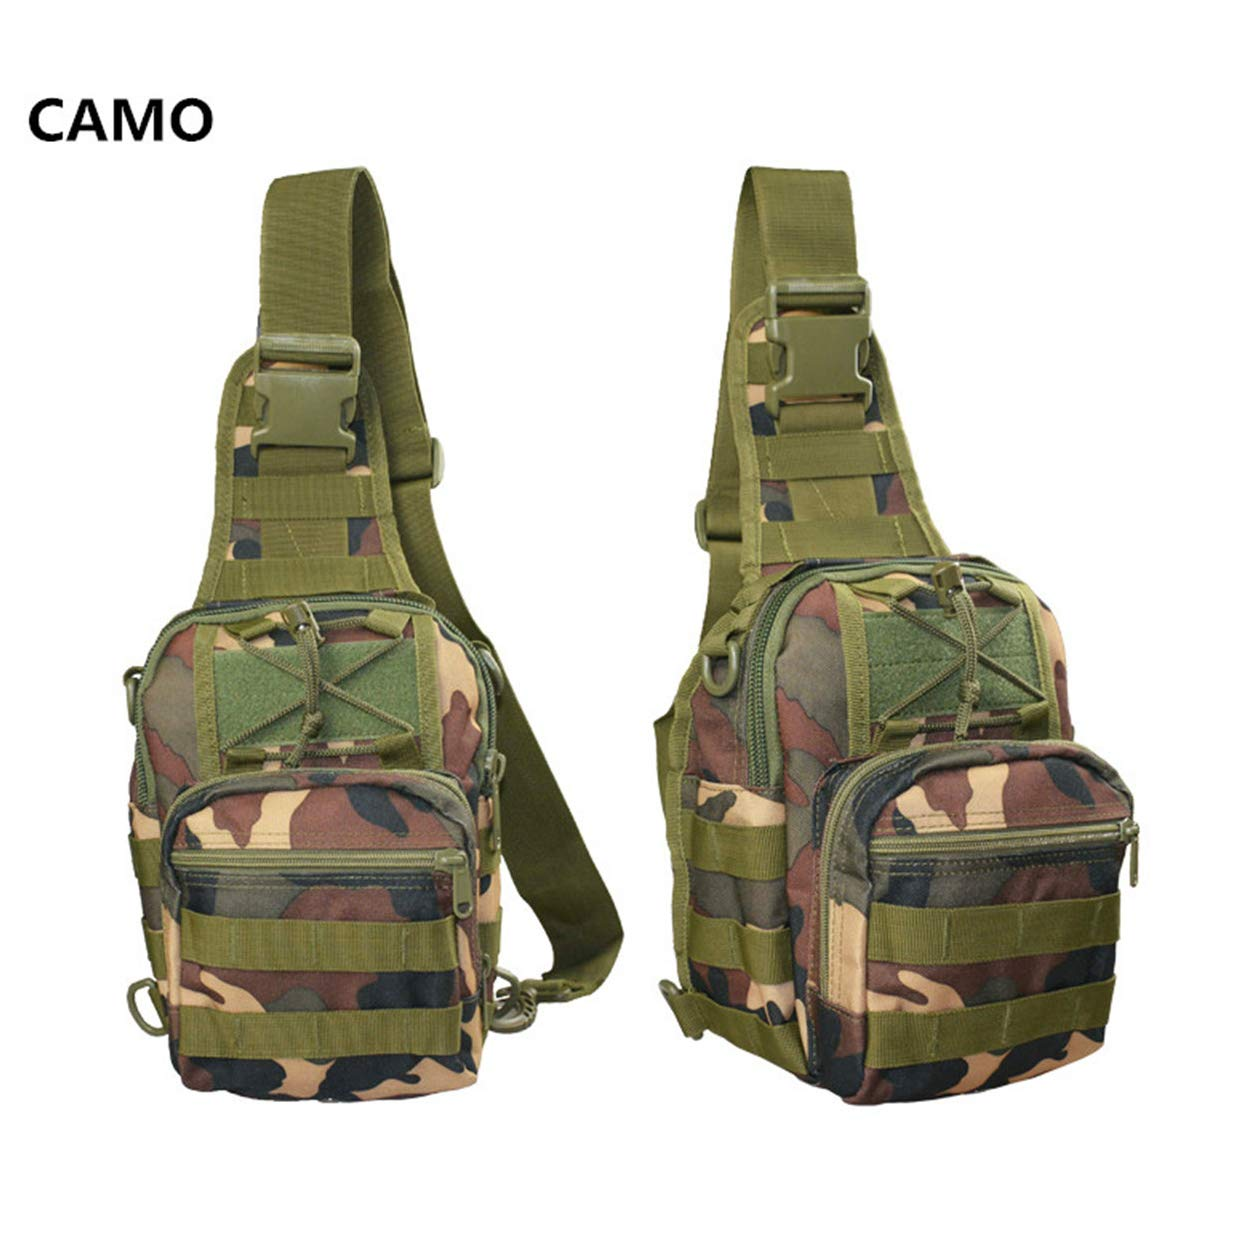 Outdoor Sling Chest Bag Multifunctional Camouflage Military Shoulder Crossbody Backpack Bag Oxford Waterproof Male And Female Sports Bag for Casual Camping Camo